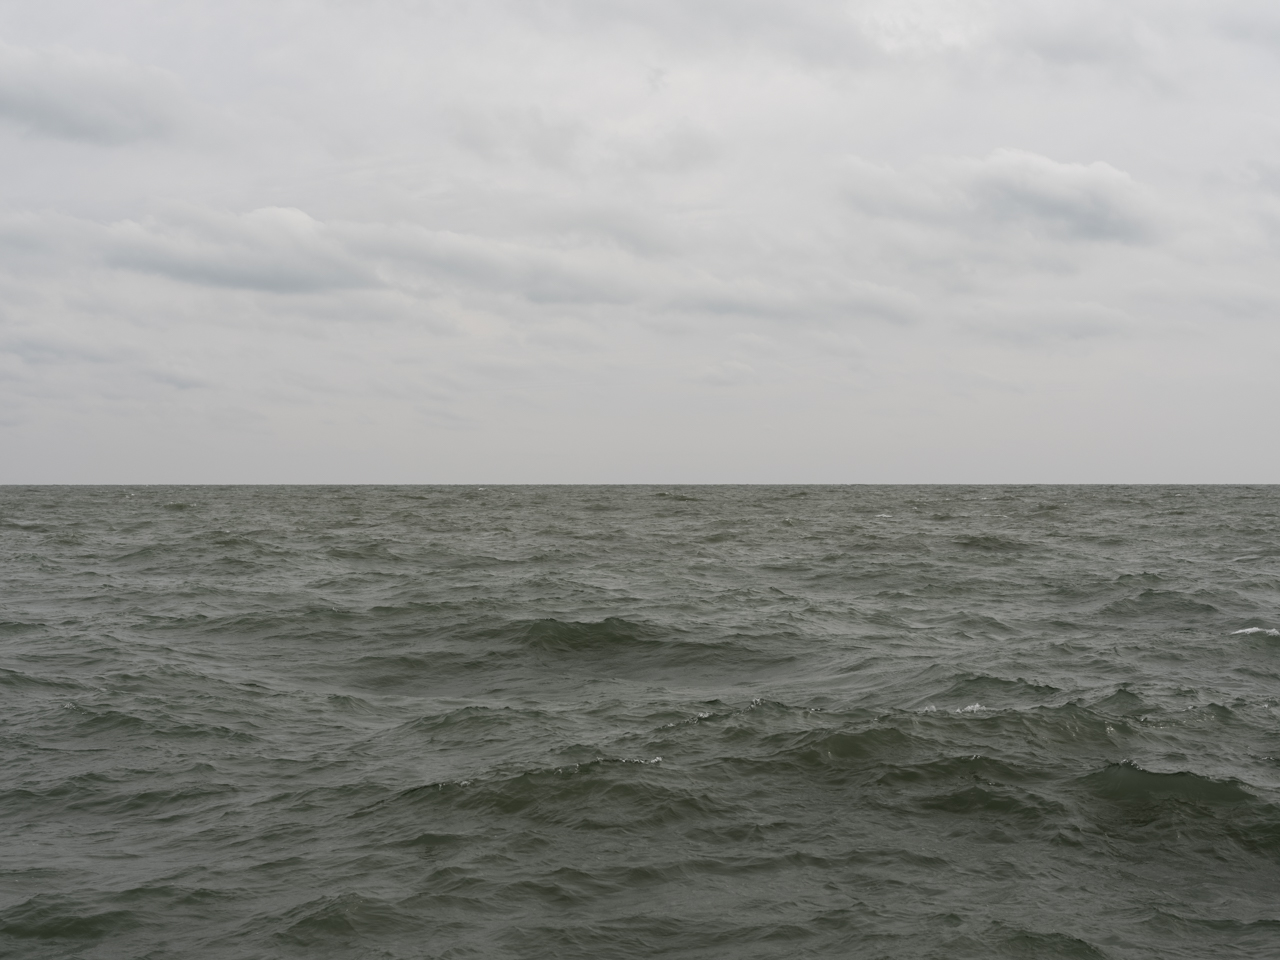 muted green waters of Lake Michigan with a cloudy gray sky